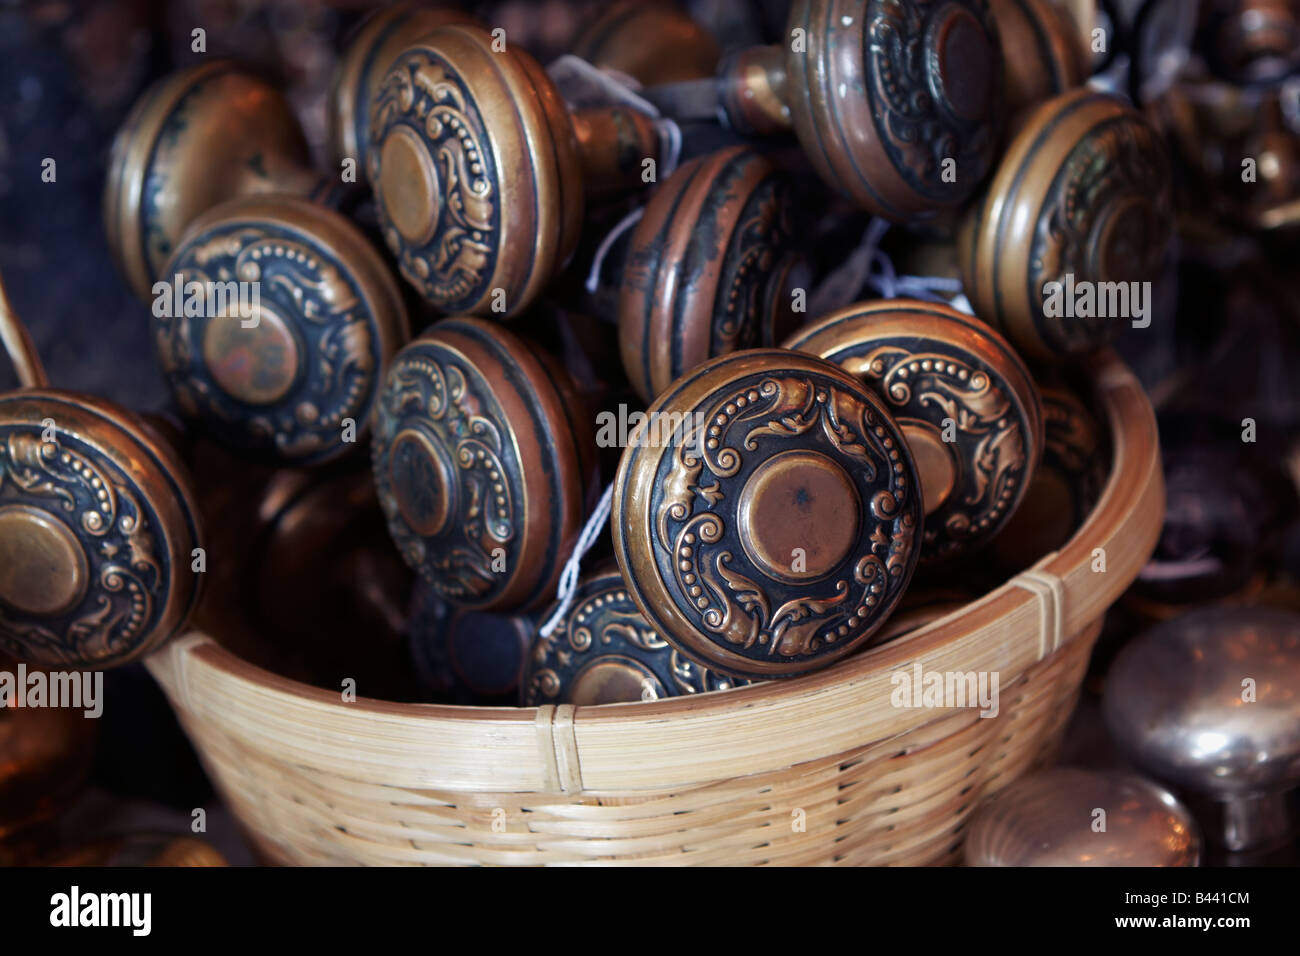 A wicker basket of brass doorknobs on display in an architectural antiques store - Stock Image